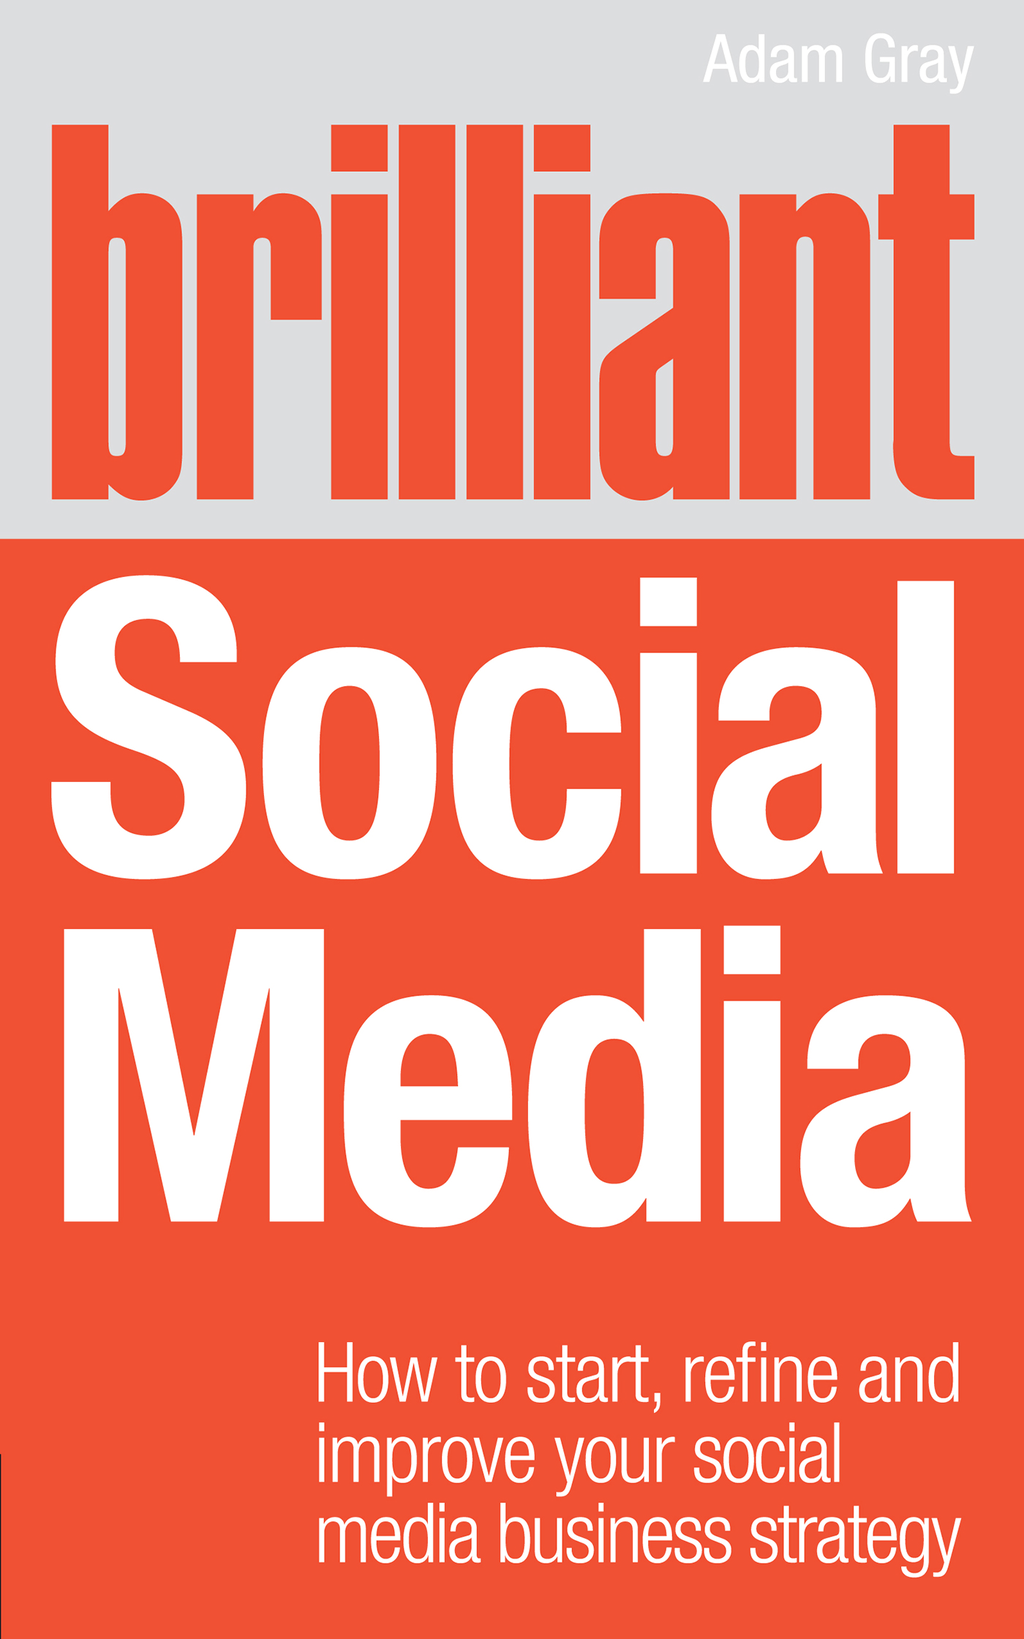 Brilliant Social Media How to start,  refine and improve your social business media strategy